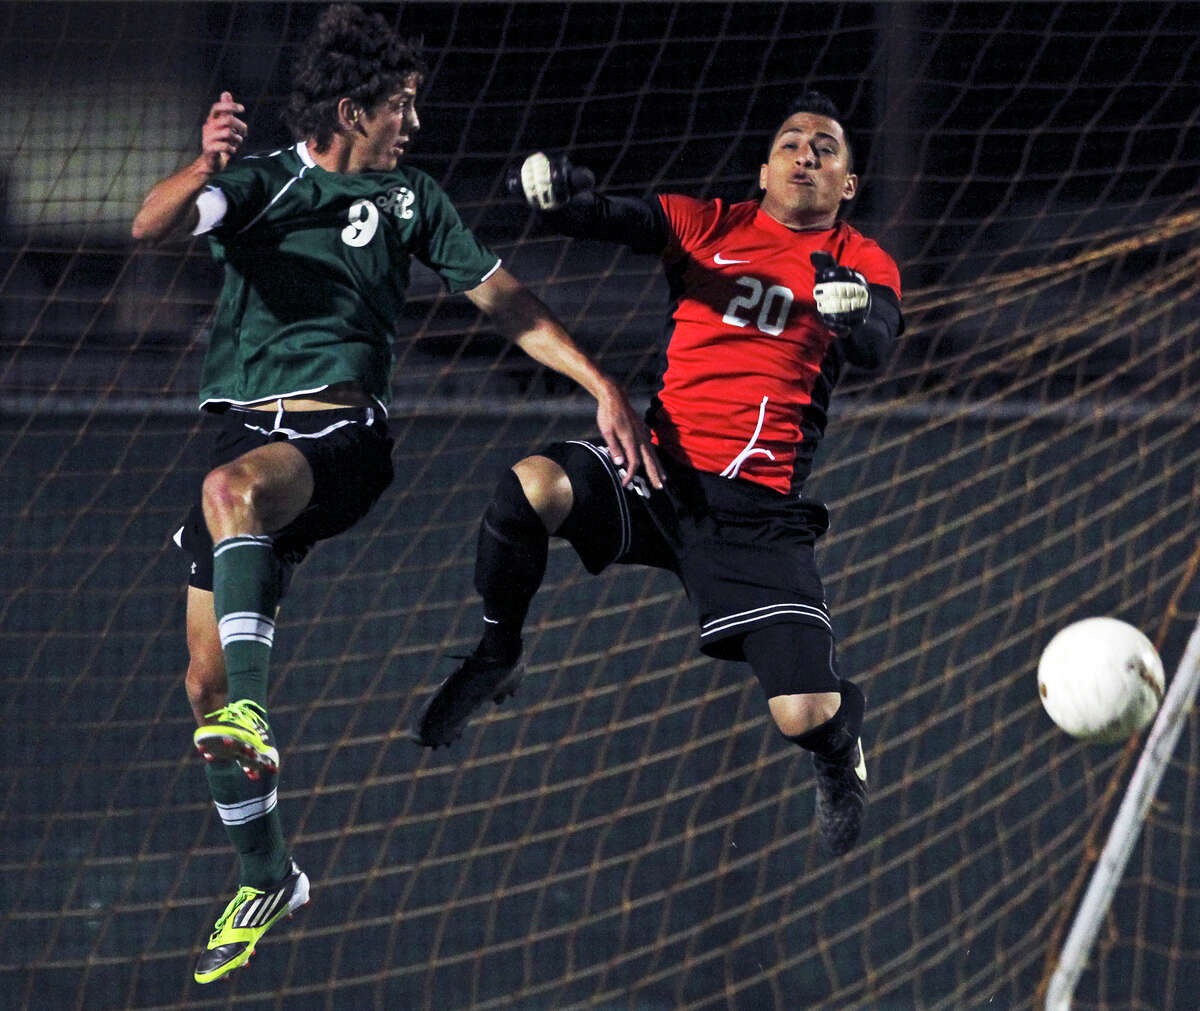 Southwest goalkeeper Daniel Huerta deflects the ball on a scoring try by Reagan's Juan Pablo Garza as the Dragons take on the Rattlers in the playoffs at Blossom Soccer Stadium on Tuesday, April 10, 2012.